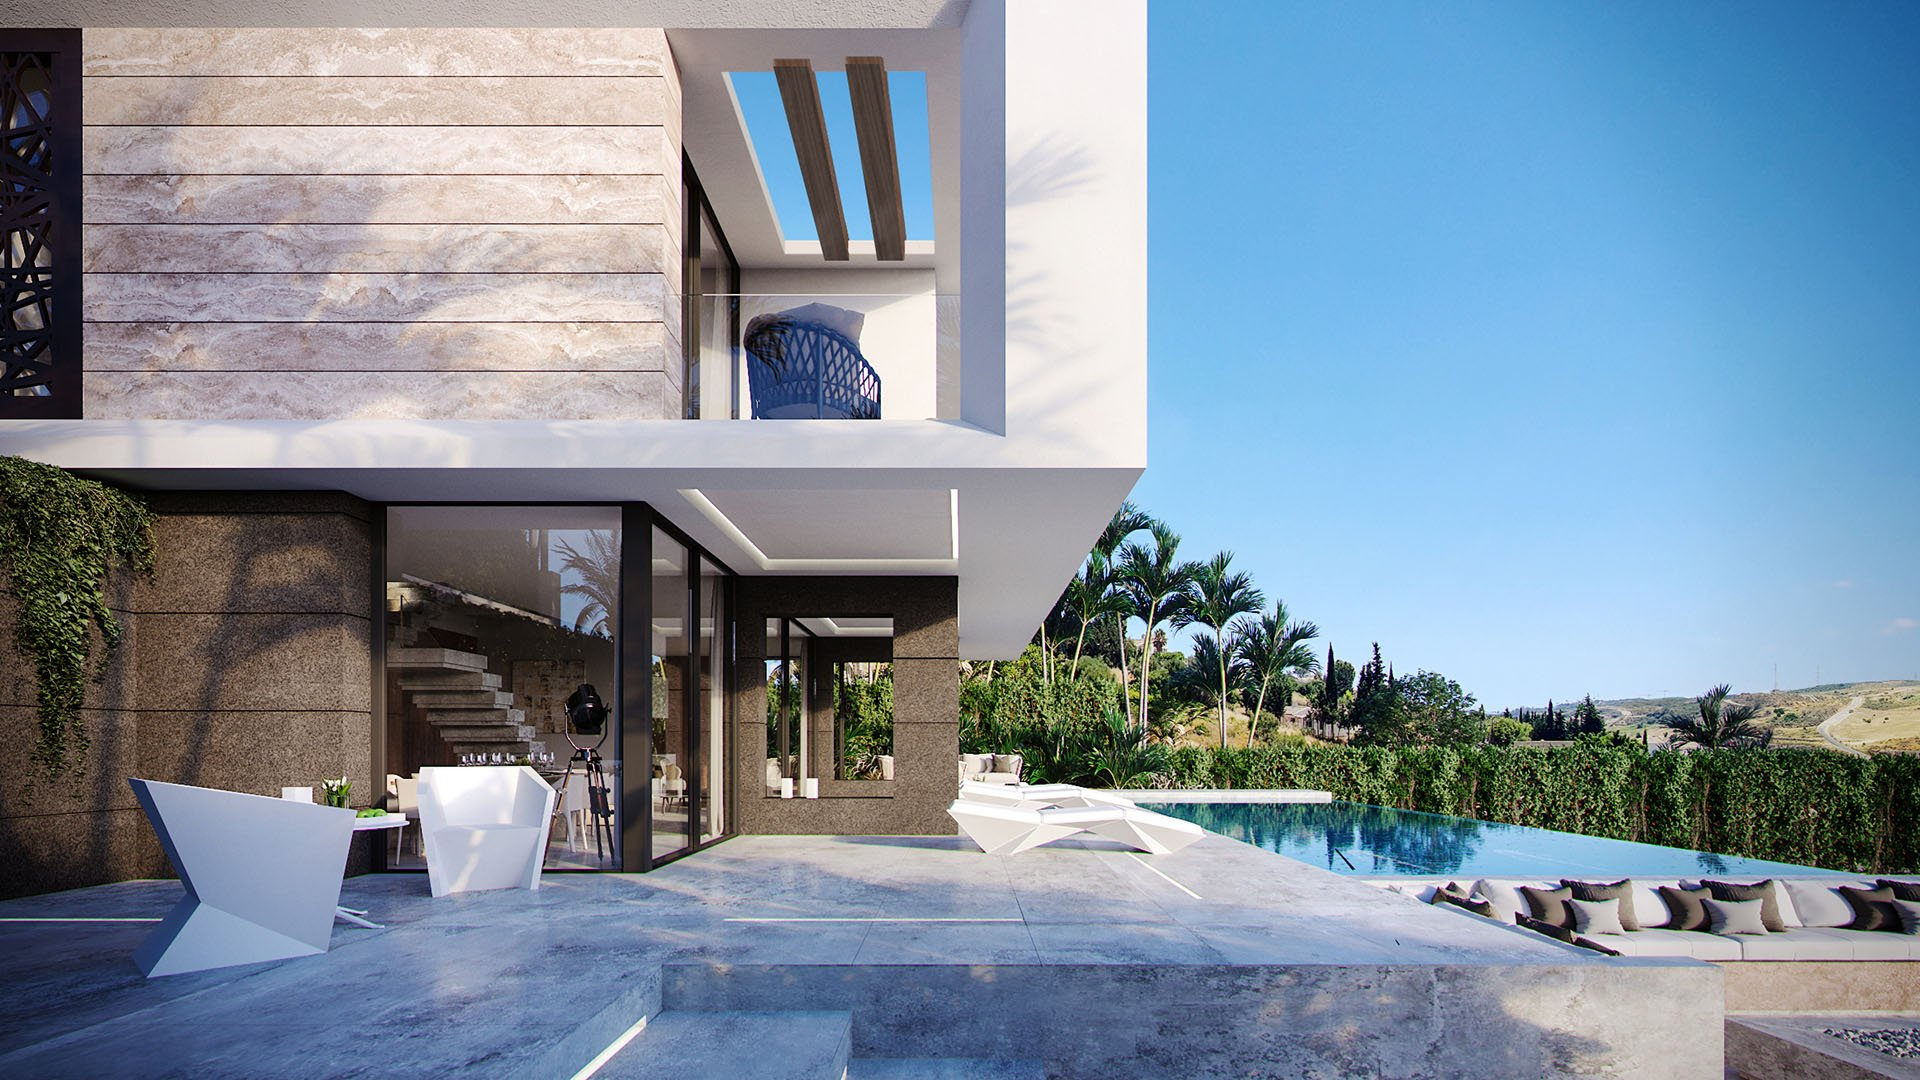 Valle Romano Green: Contemporary villas in Valle Romana Golf resort – Estepona